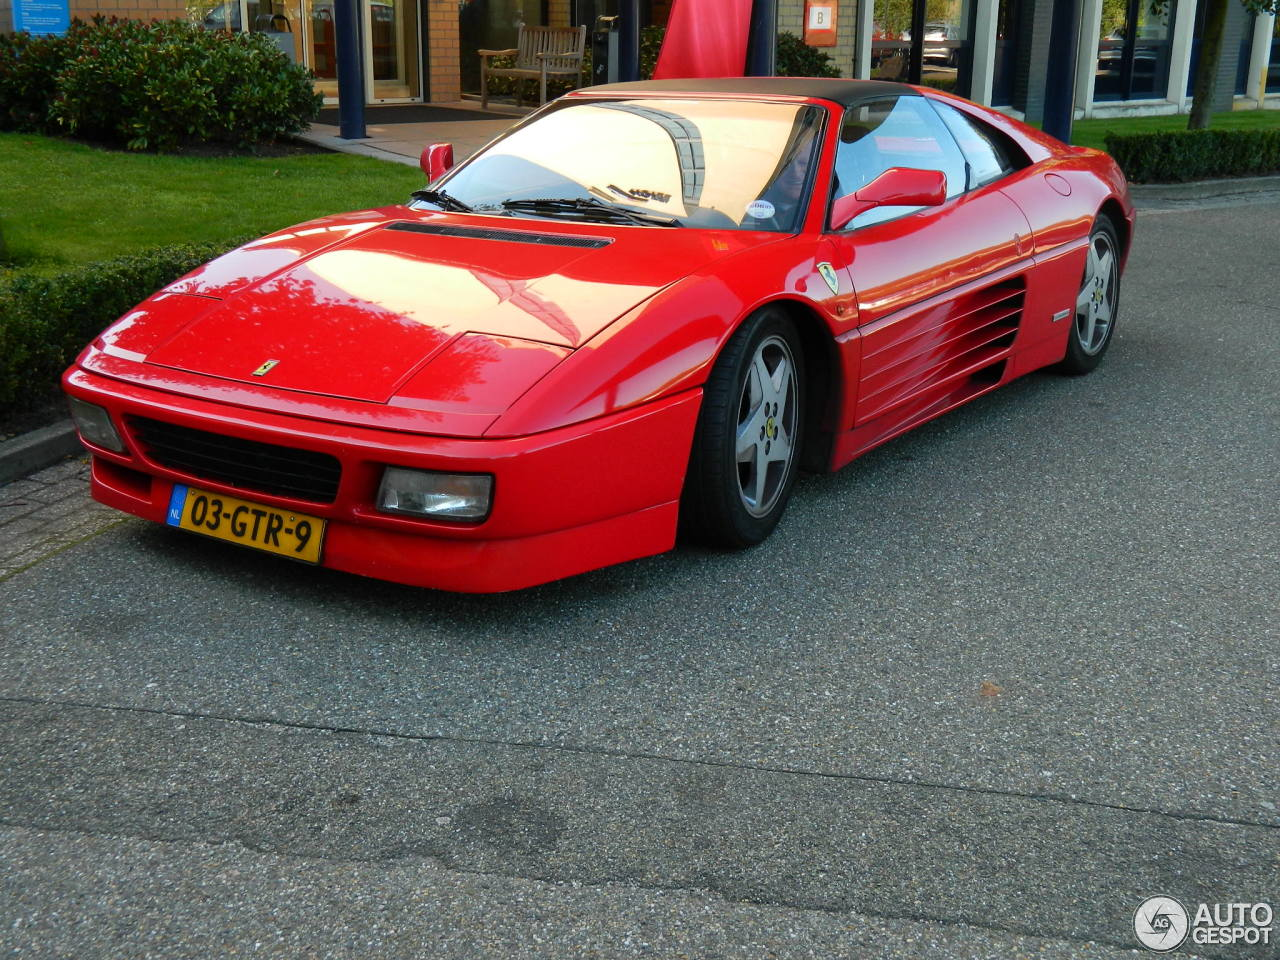 ferrari 348 ts 23 december 2012 autogespot. Black Bedroom Furniture Sets. Home Design Ideas